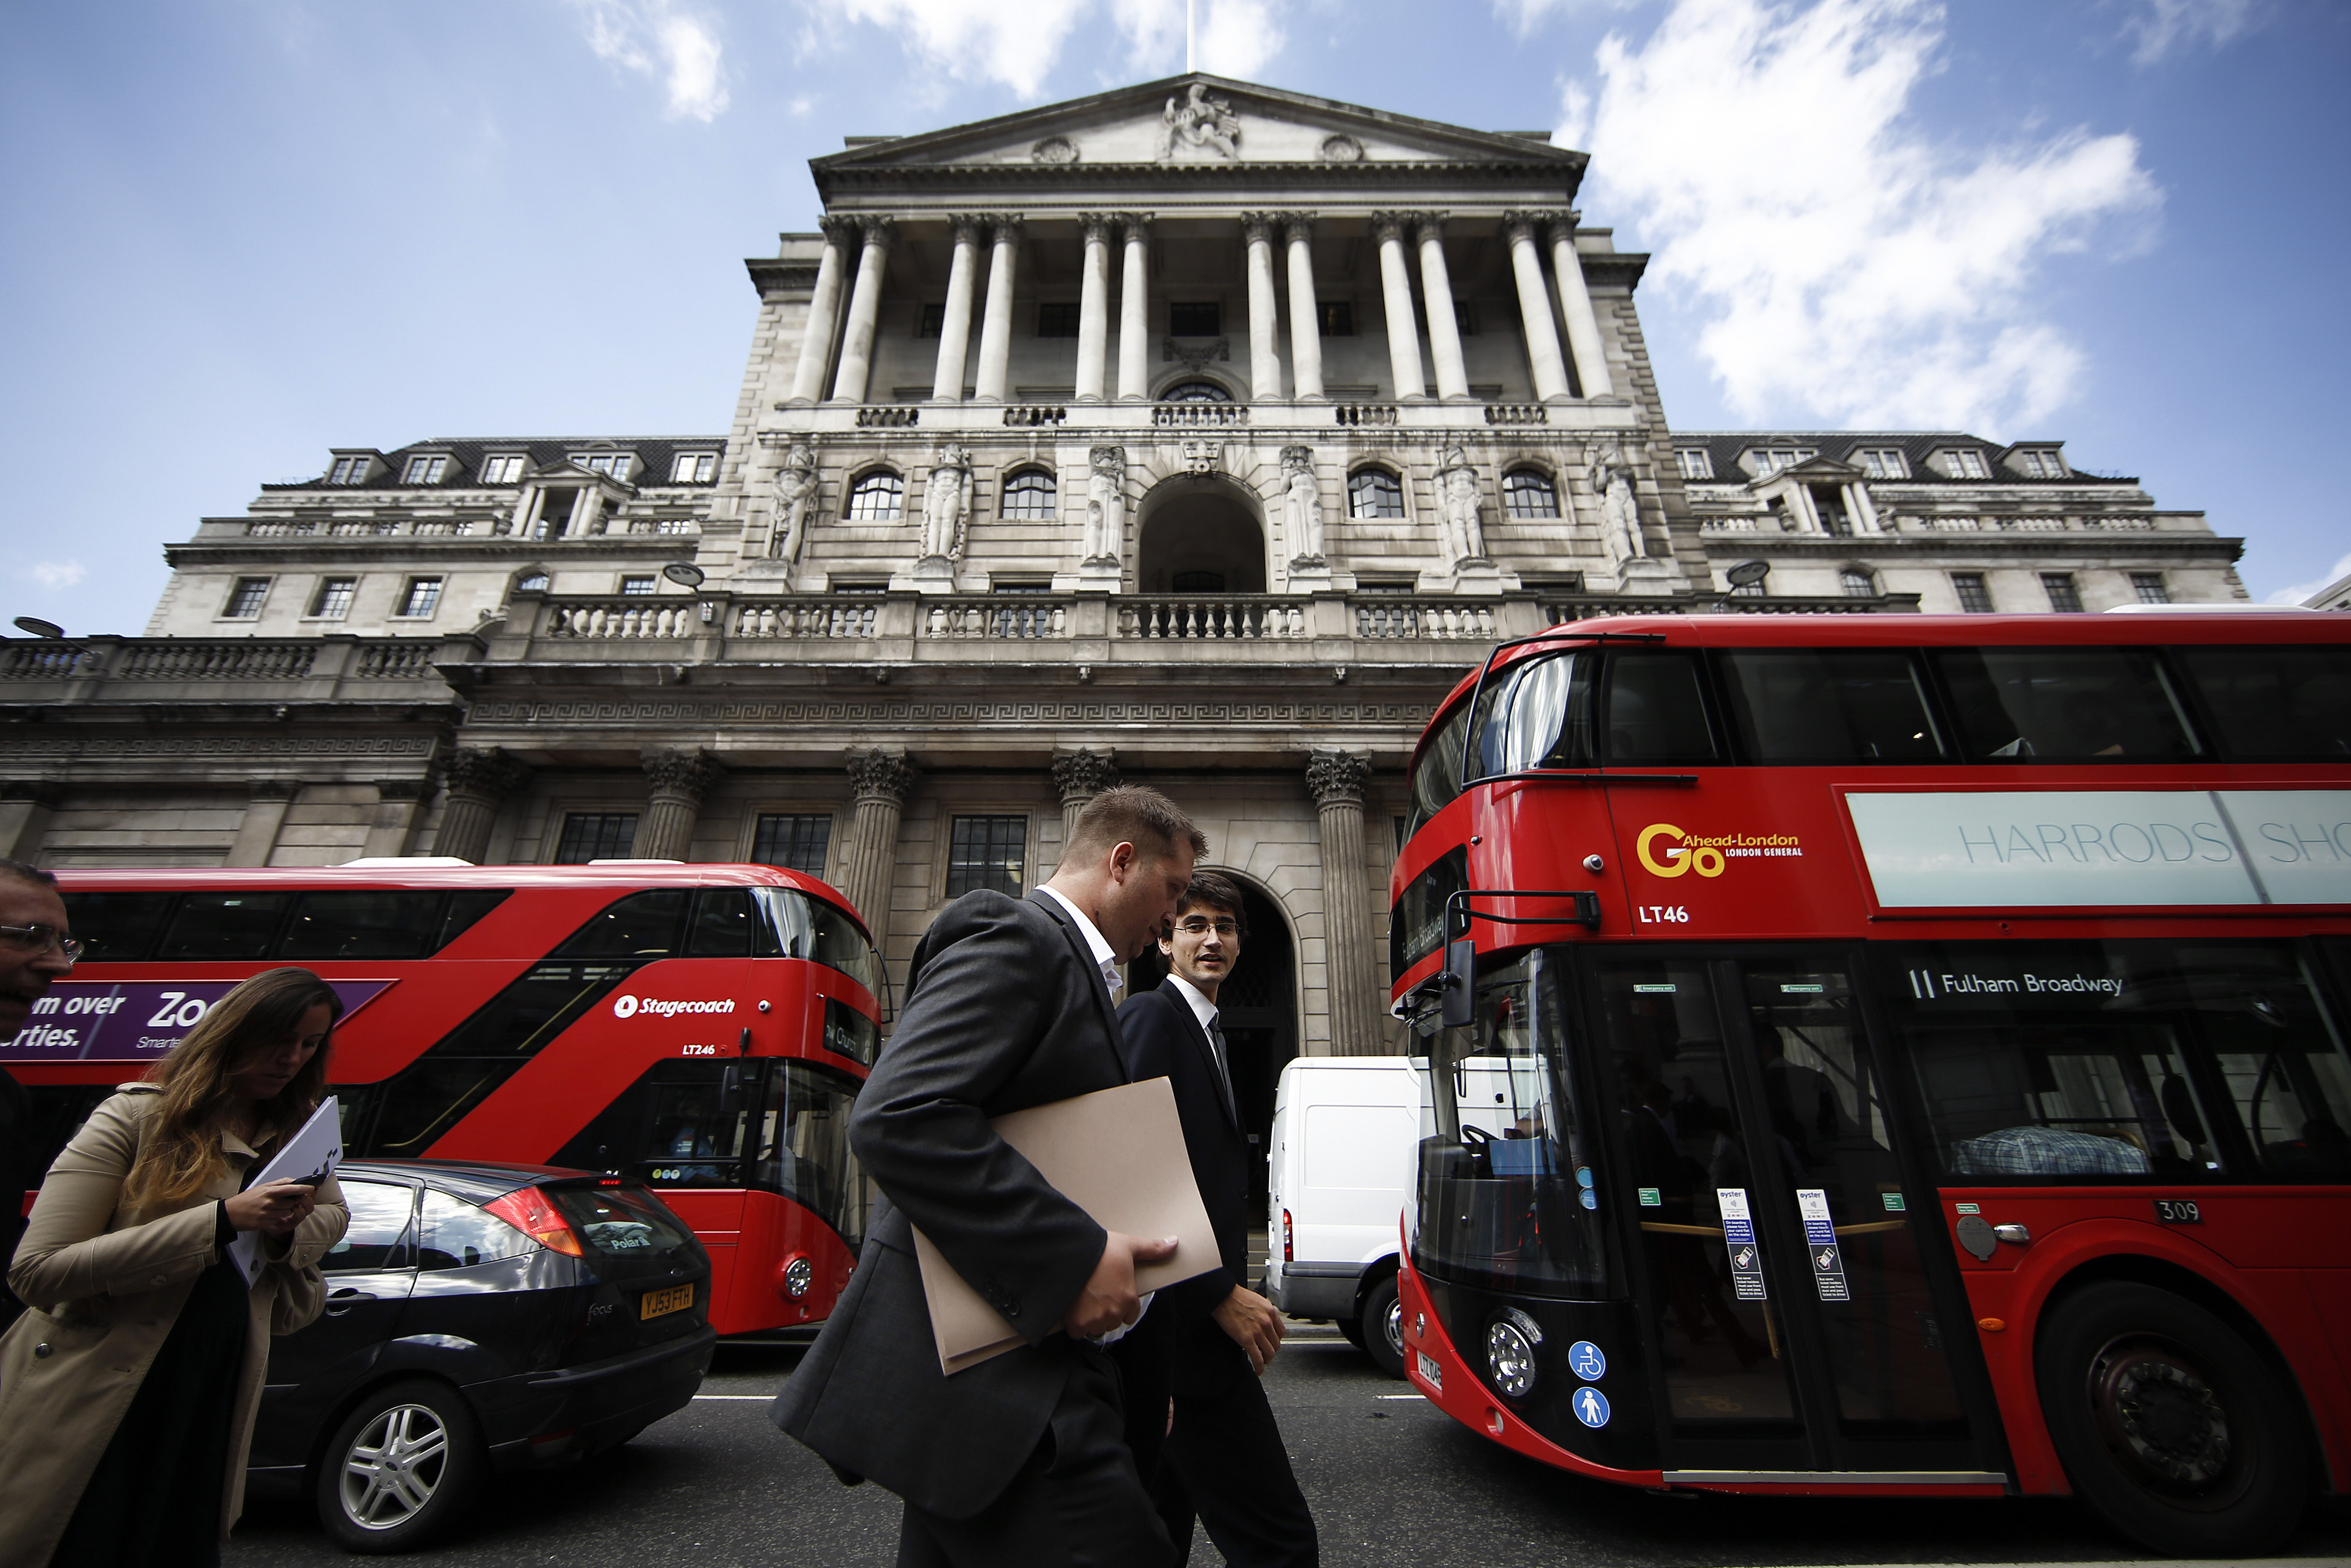 The Bank of England Ahead Of Interest Rate Decision